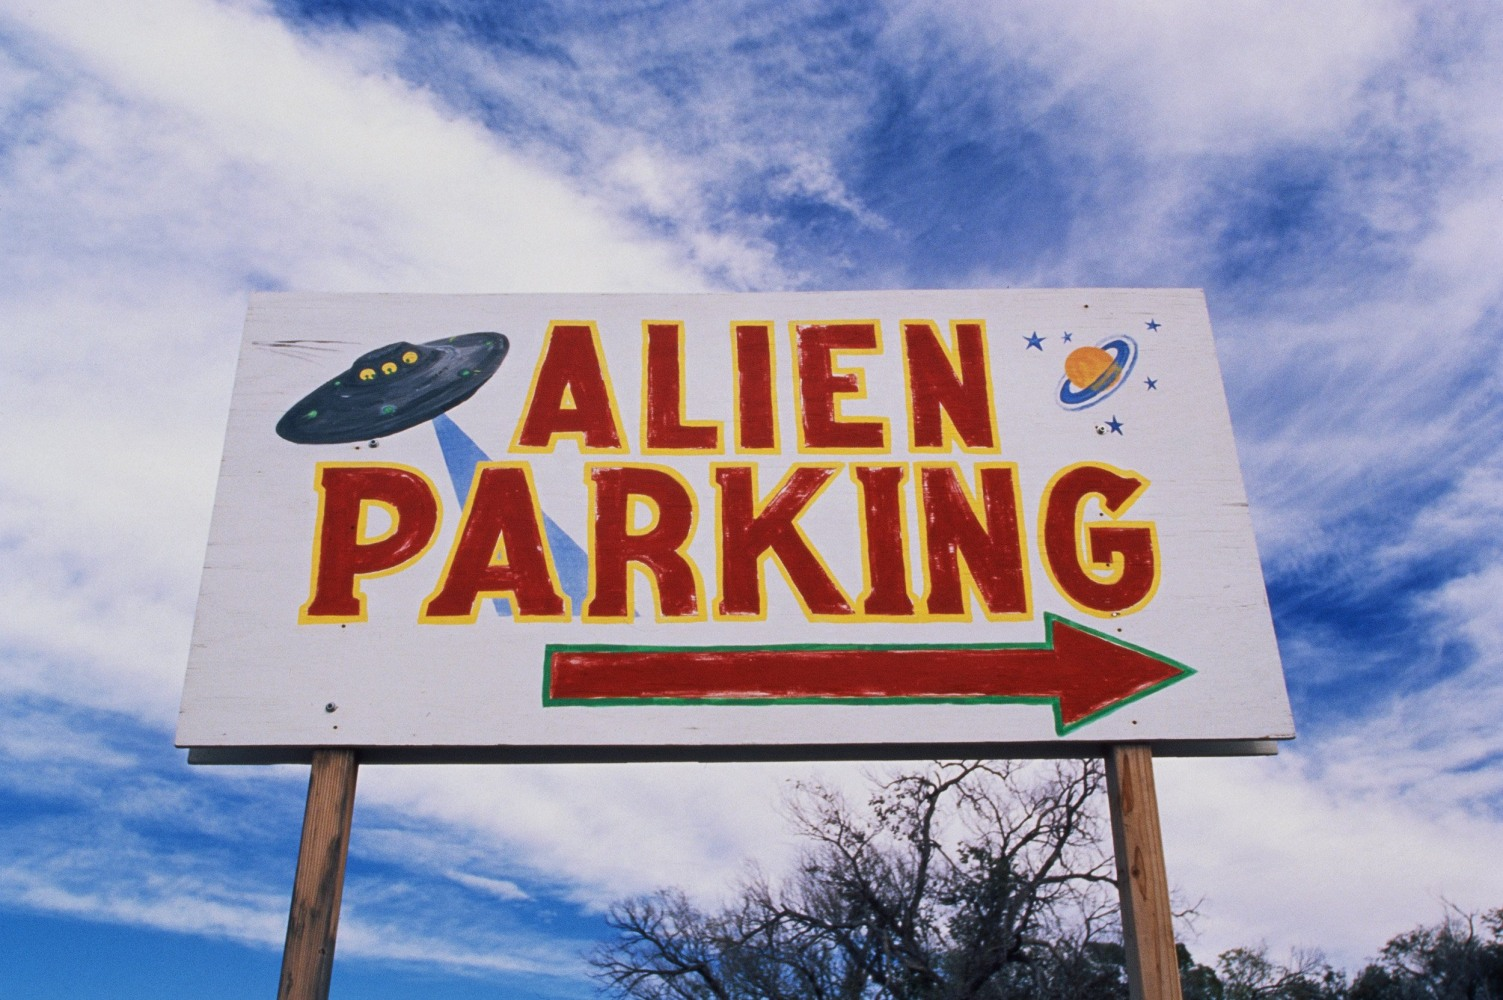 The Pentagon spent $22 million on a shadowy program to investigate UFOs